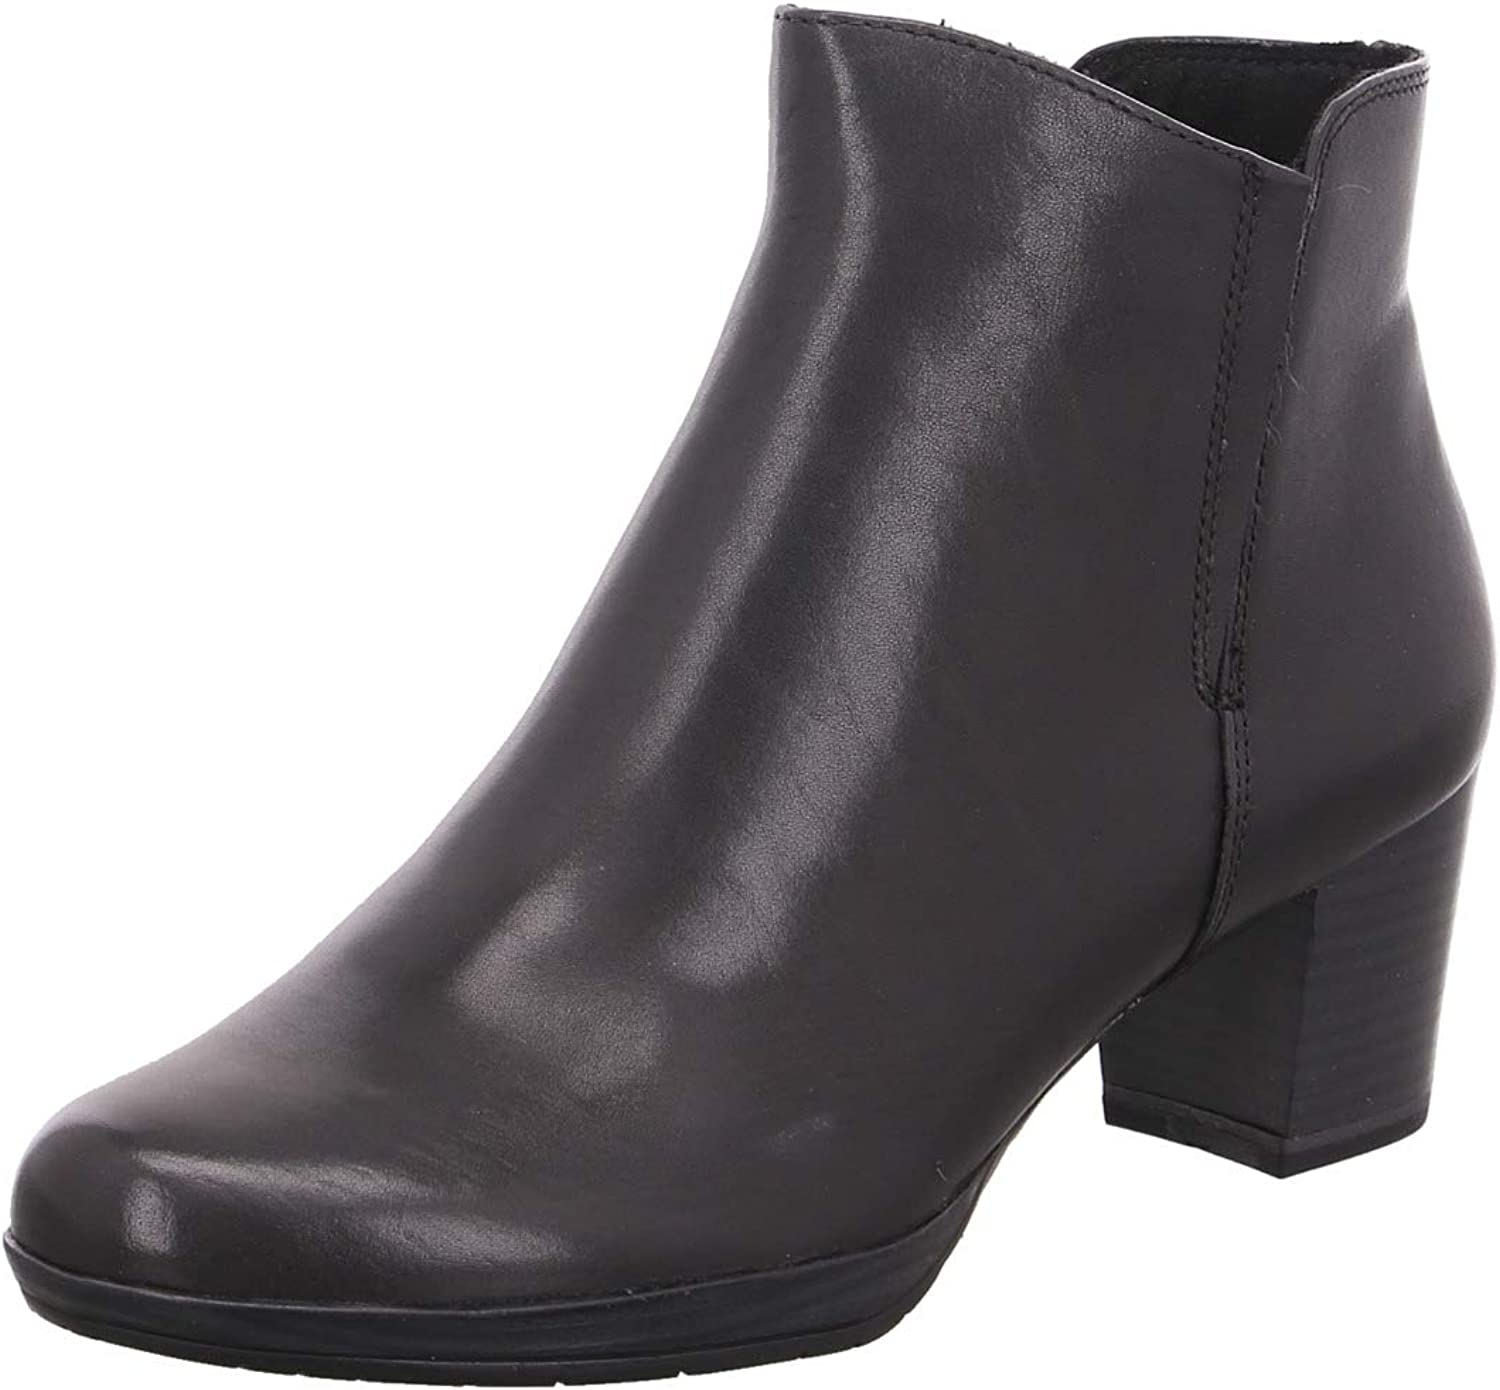 MARCO TOZZI Max 62% OFF Women's 2-2-25389-25 Leder Stiefelette Ankle Spring new work B Boot